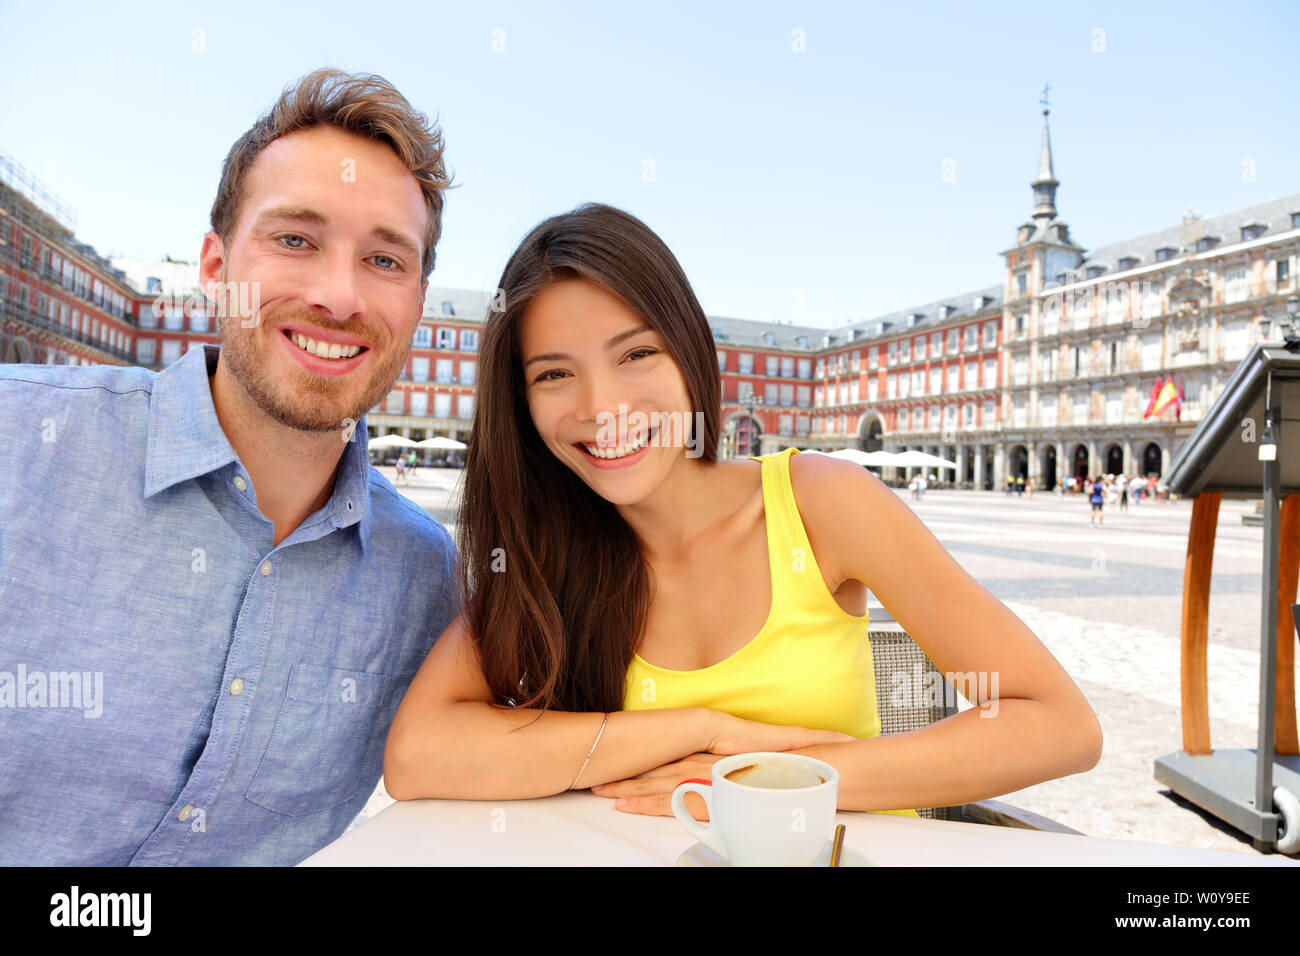 Madrid tourists taking selfie picture at cafe drinking coffee having fun on Plaza Mayor. Portrait of tourist couple sightseeing visiting tourism landmarks and attractions in Spain. Young woman and man Stock Photo